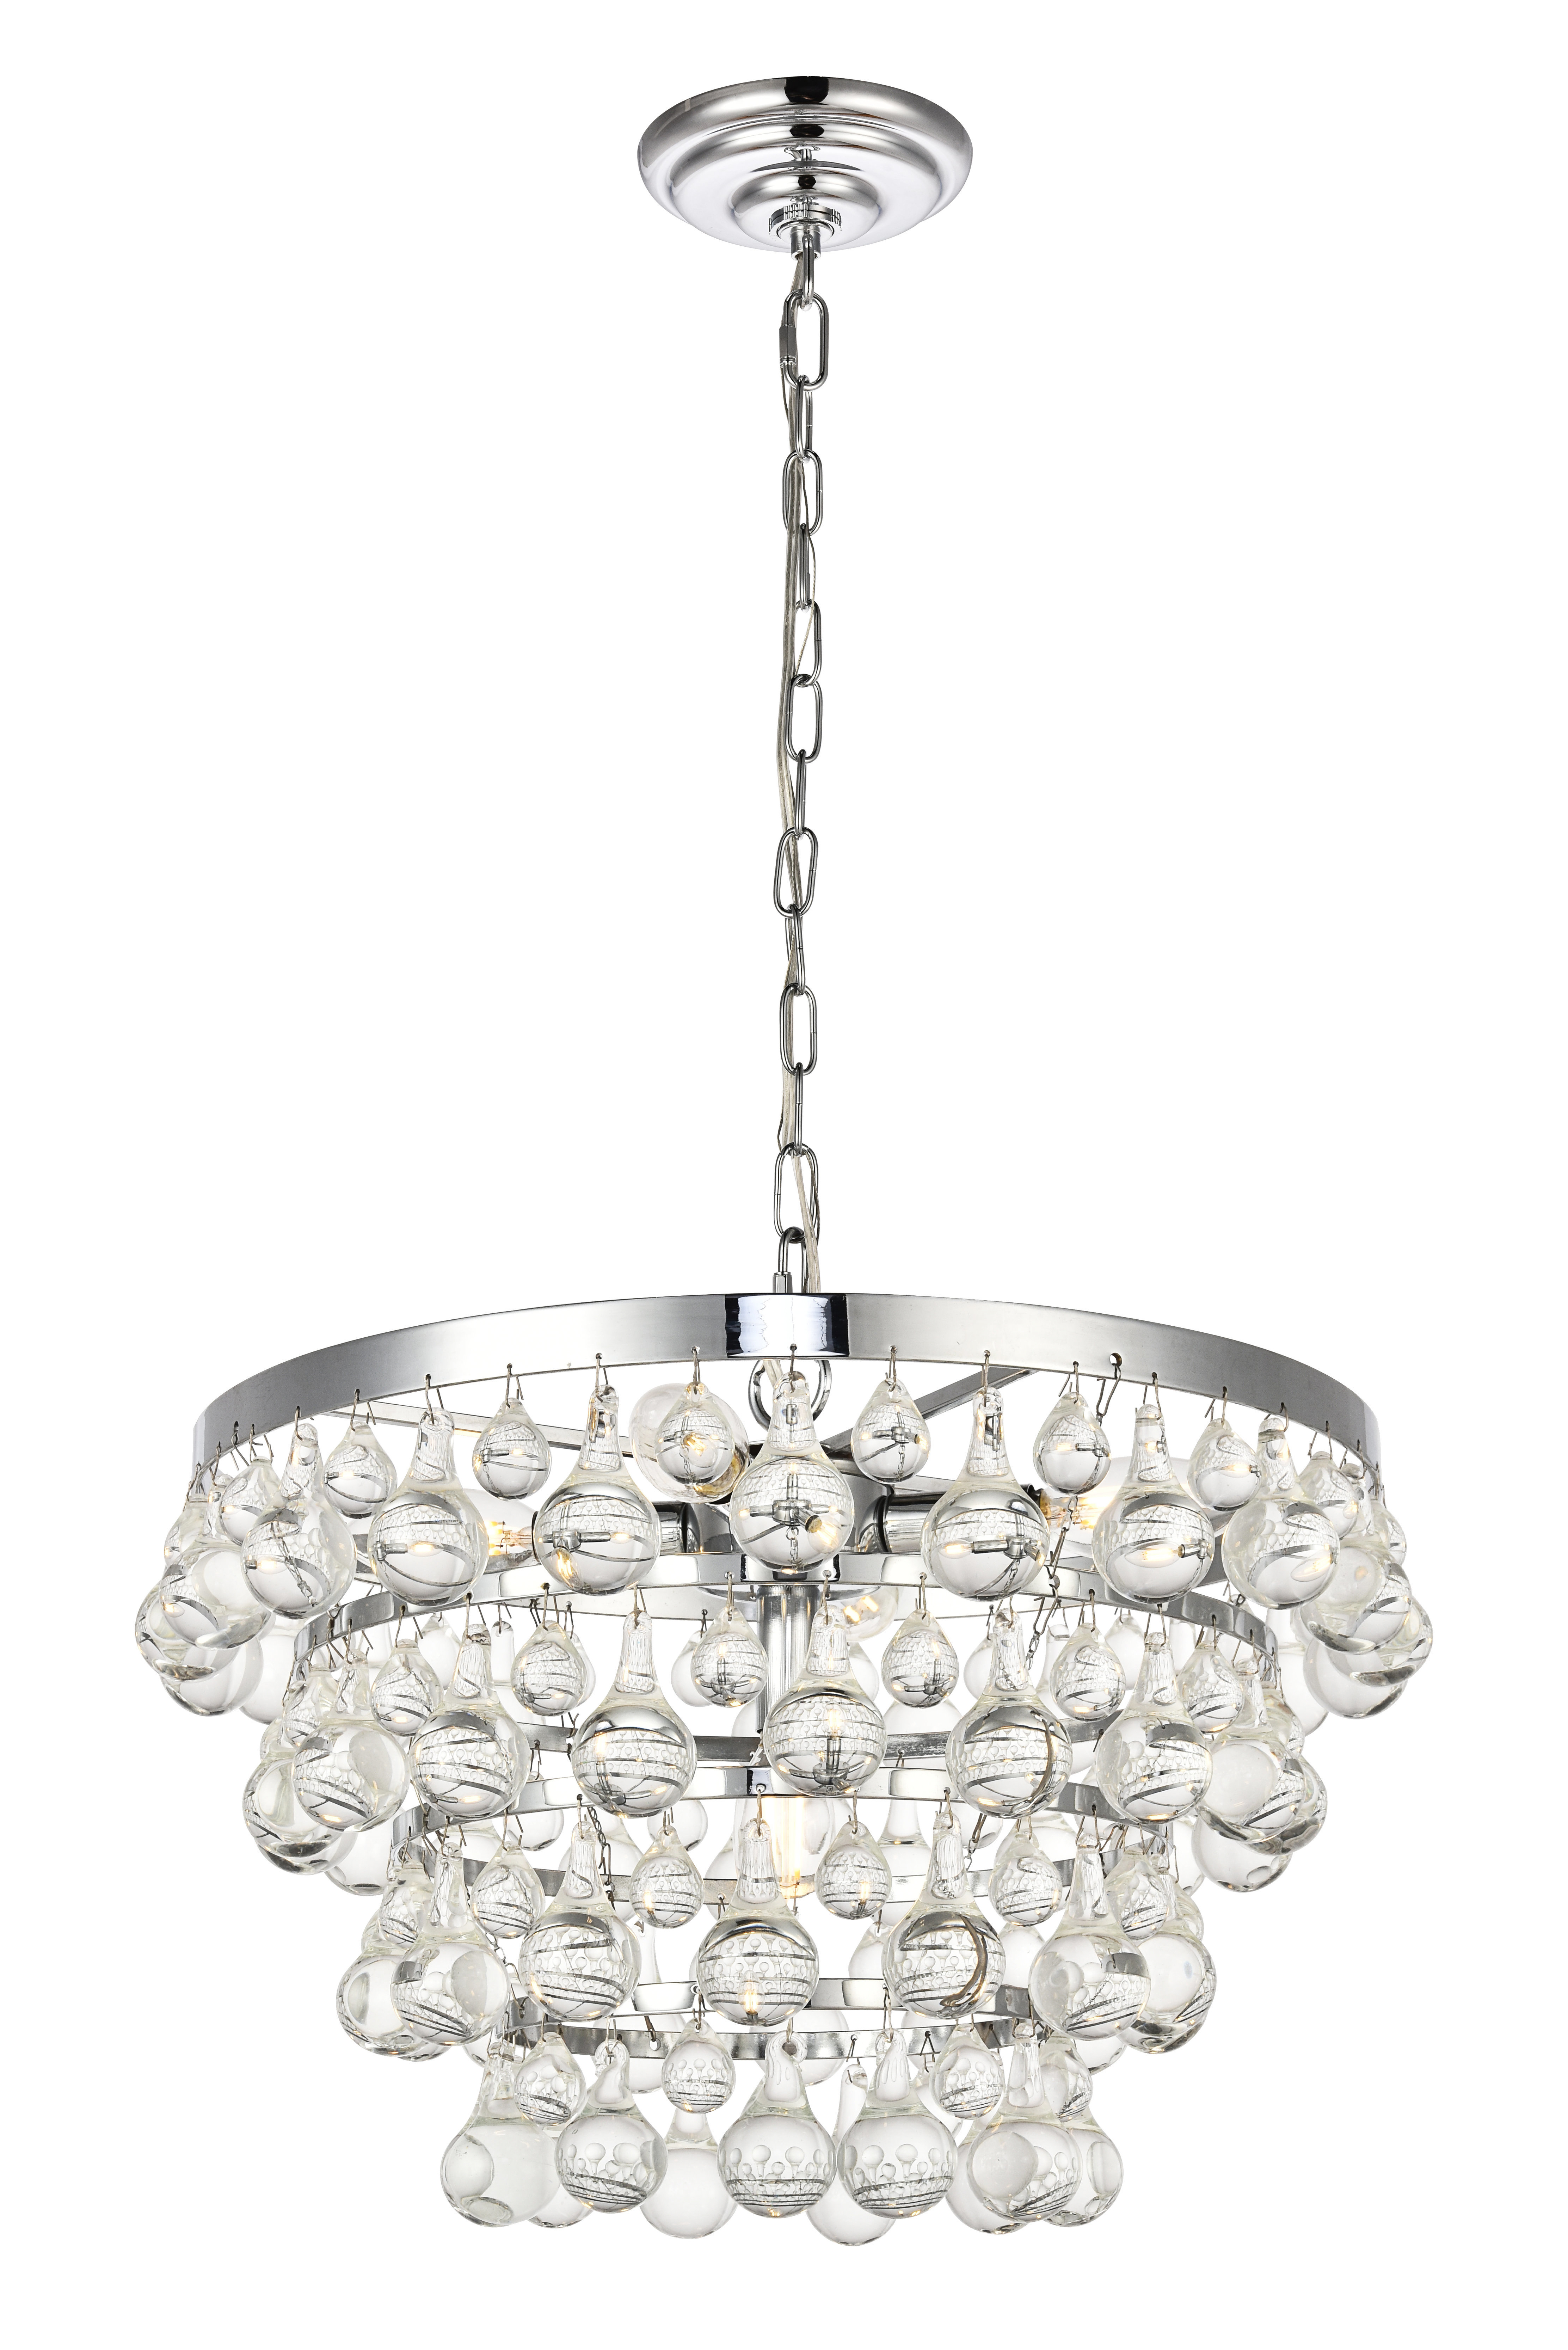 Well Liked Bramers 6 Light Novelty Chandeliers Throughout Botolph 5 Light Novelty Chandelier (View 5 of 20)